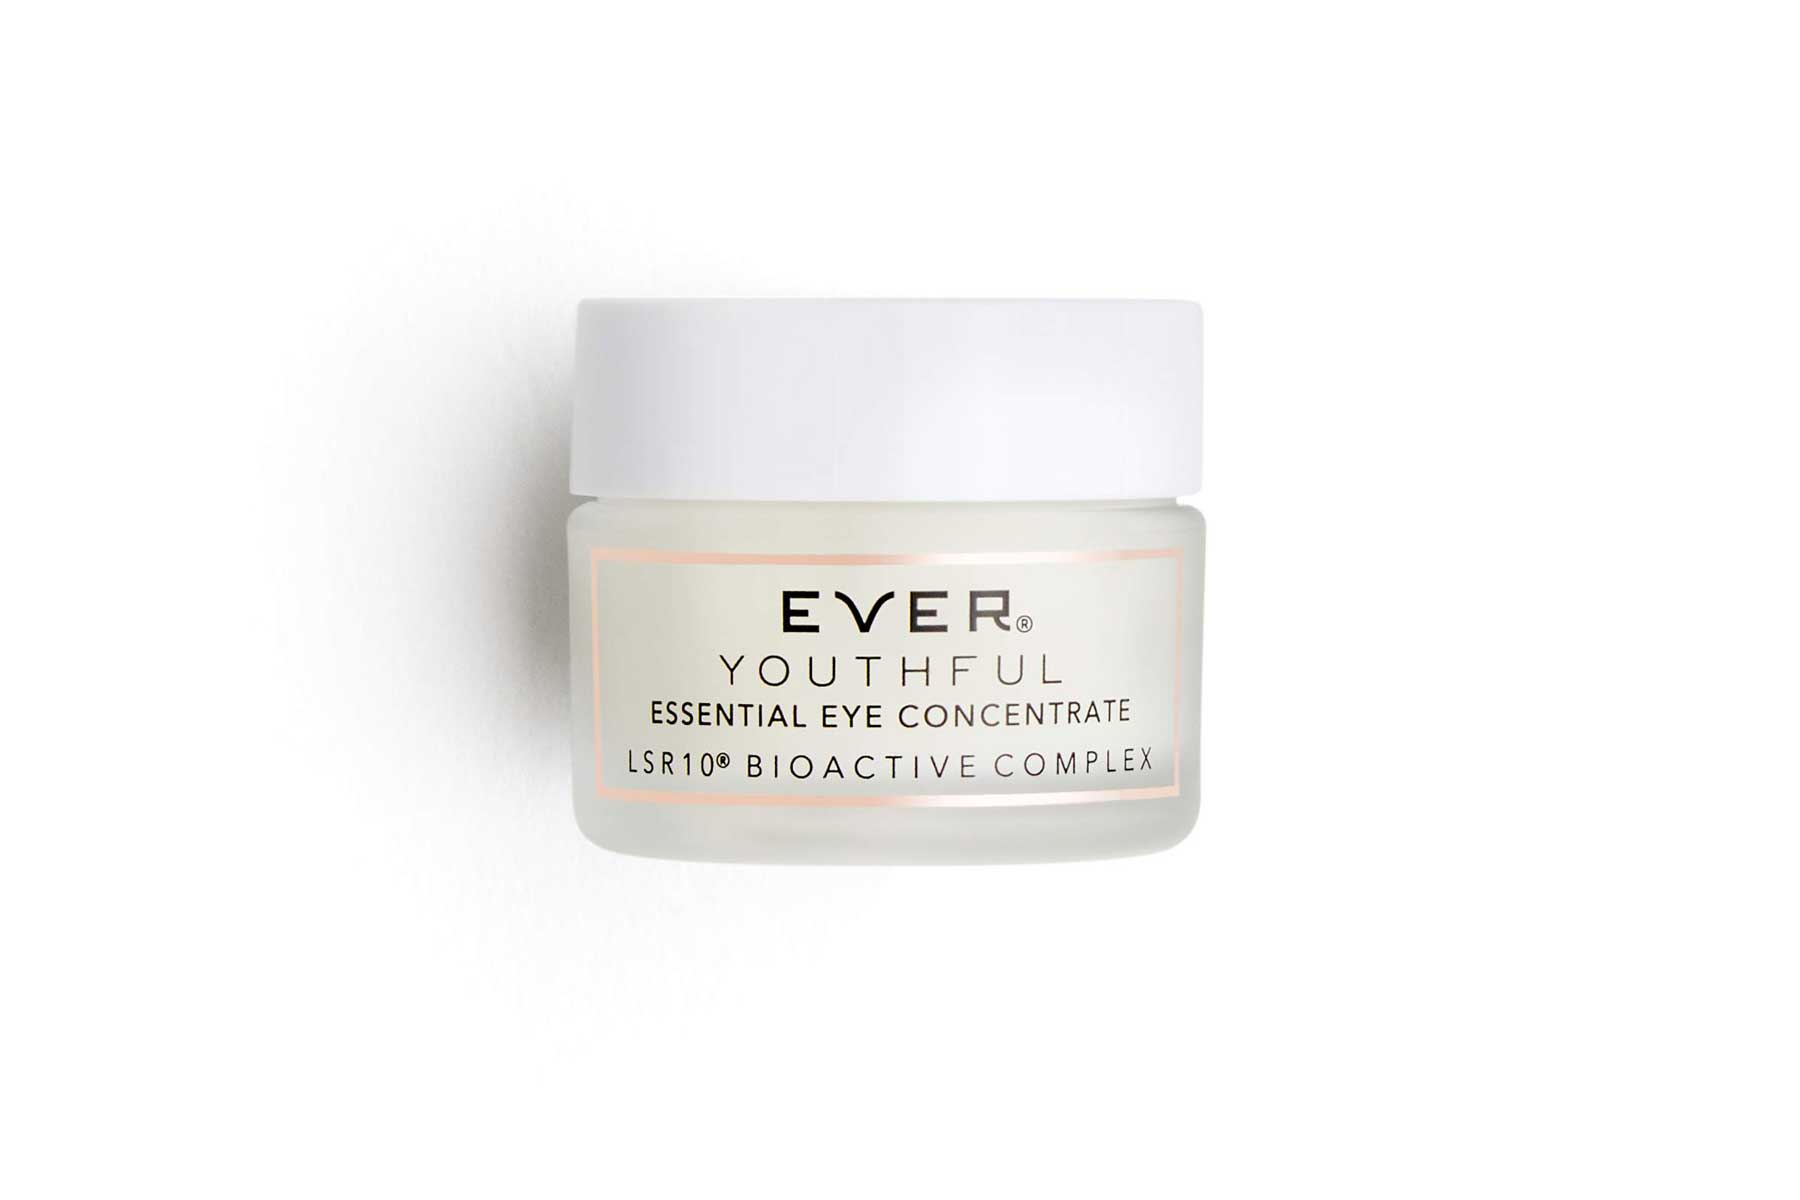 Ever Youthful Essential Eye Concentrate